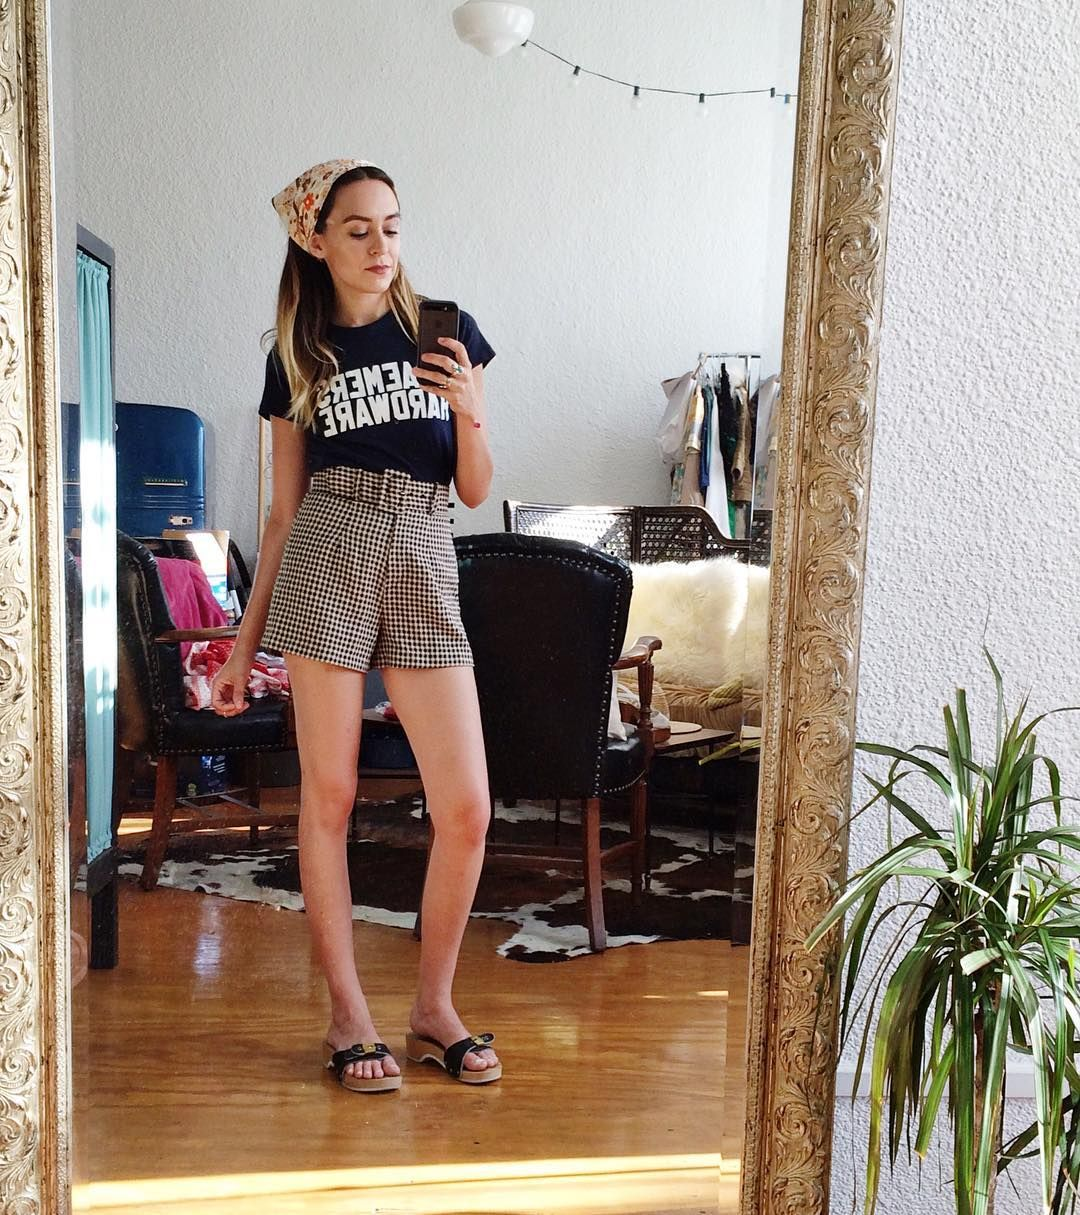 Wearing Dr. Scholl's Exercise Sandals